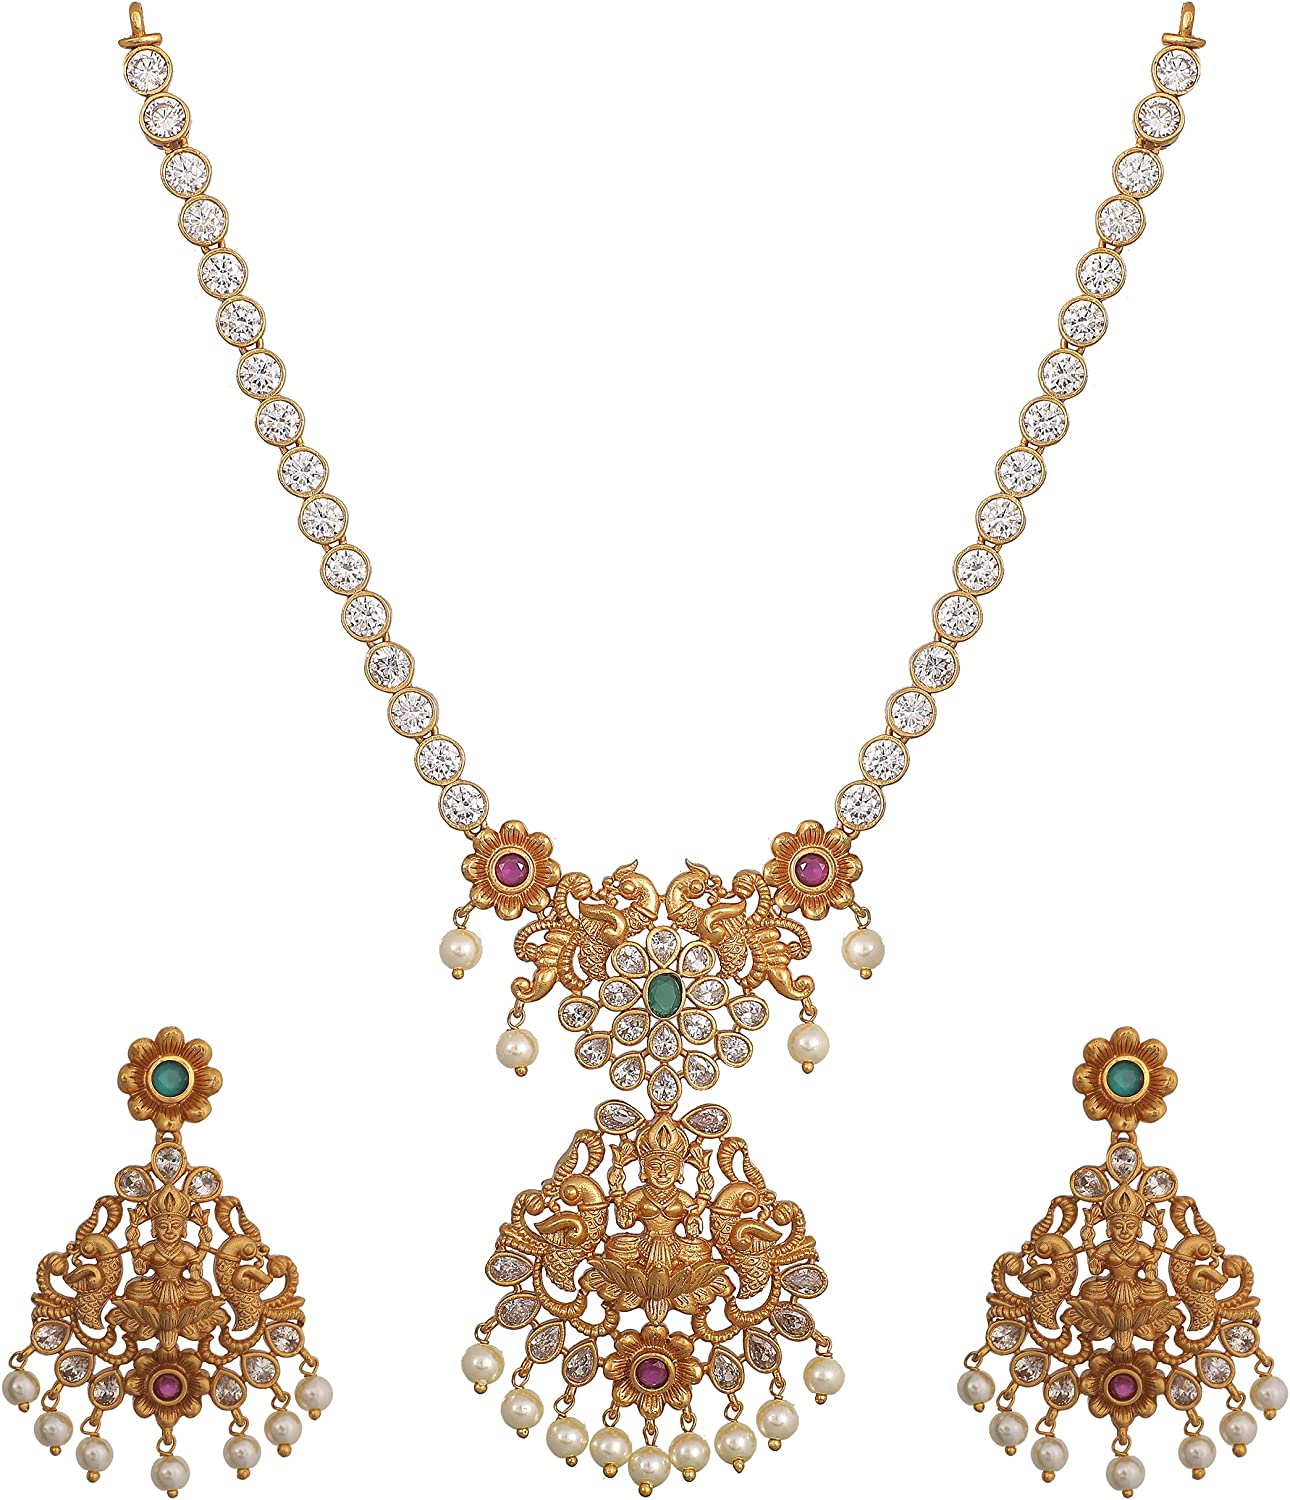 Tarinika Antique CZ Gold-Plated Indian Necklace Set - White Red Green -- For Women and Girls